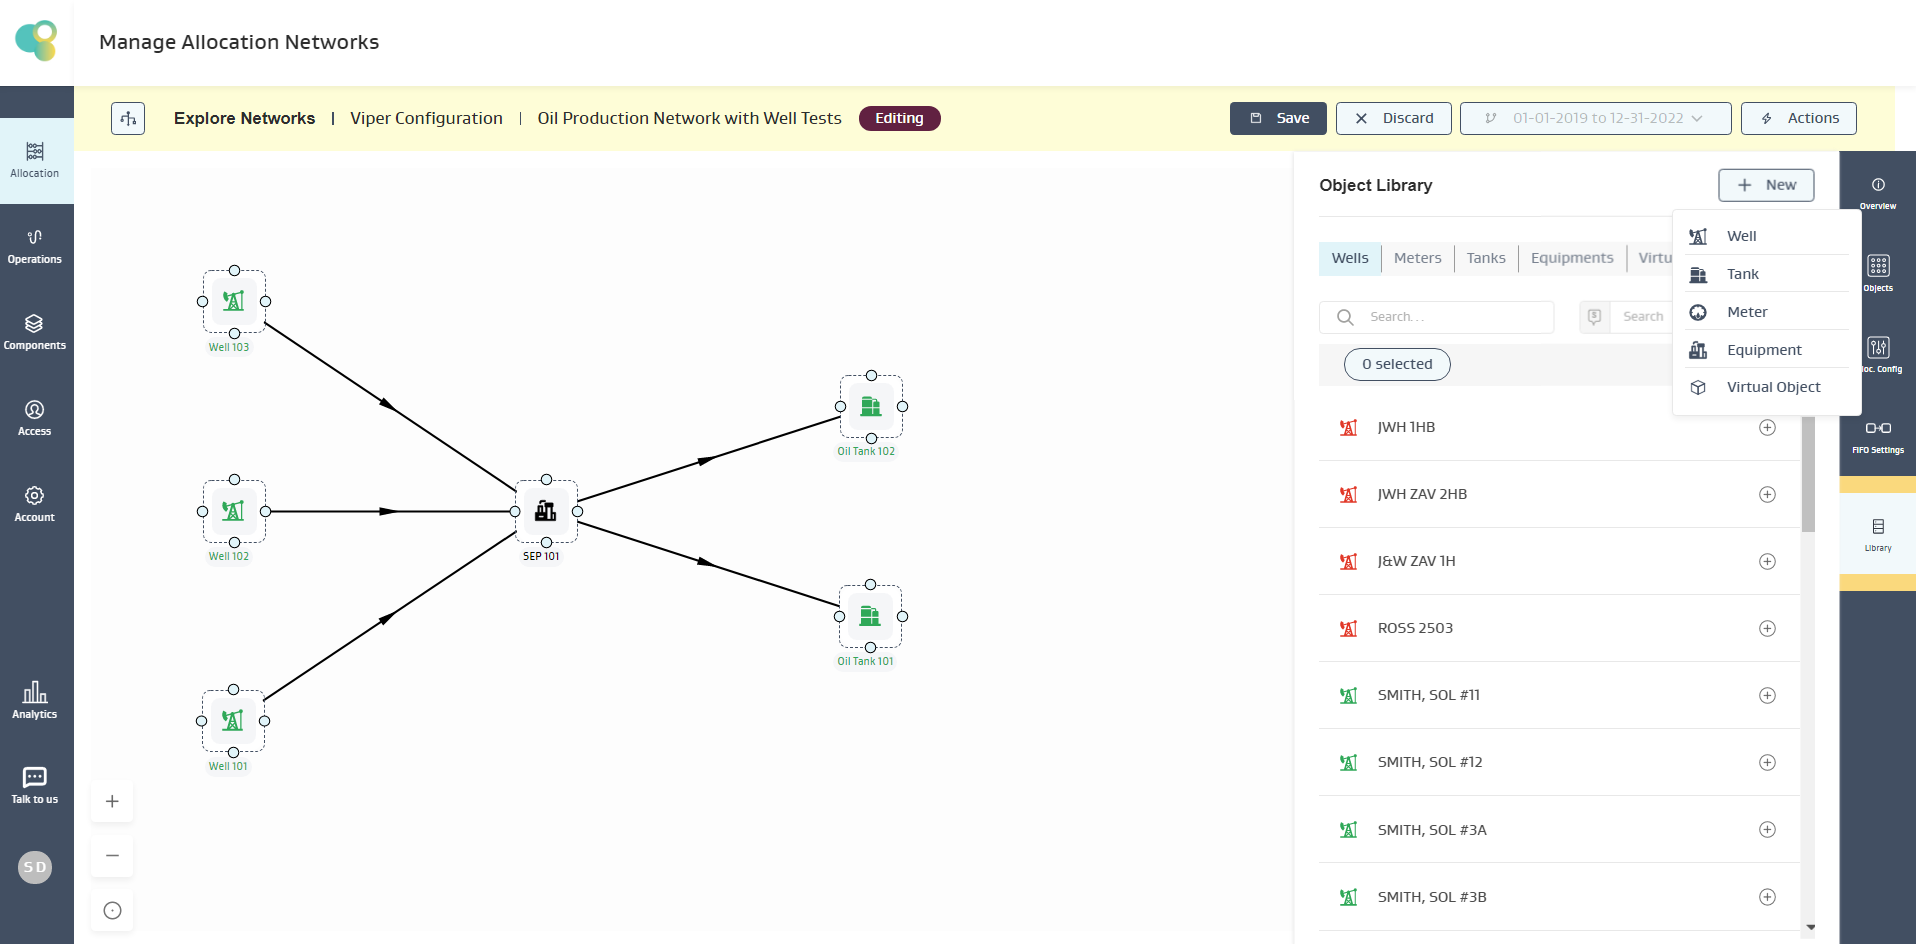 Create a new asset while editing the allocation network